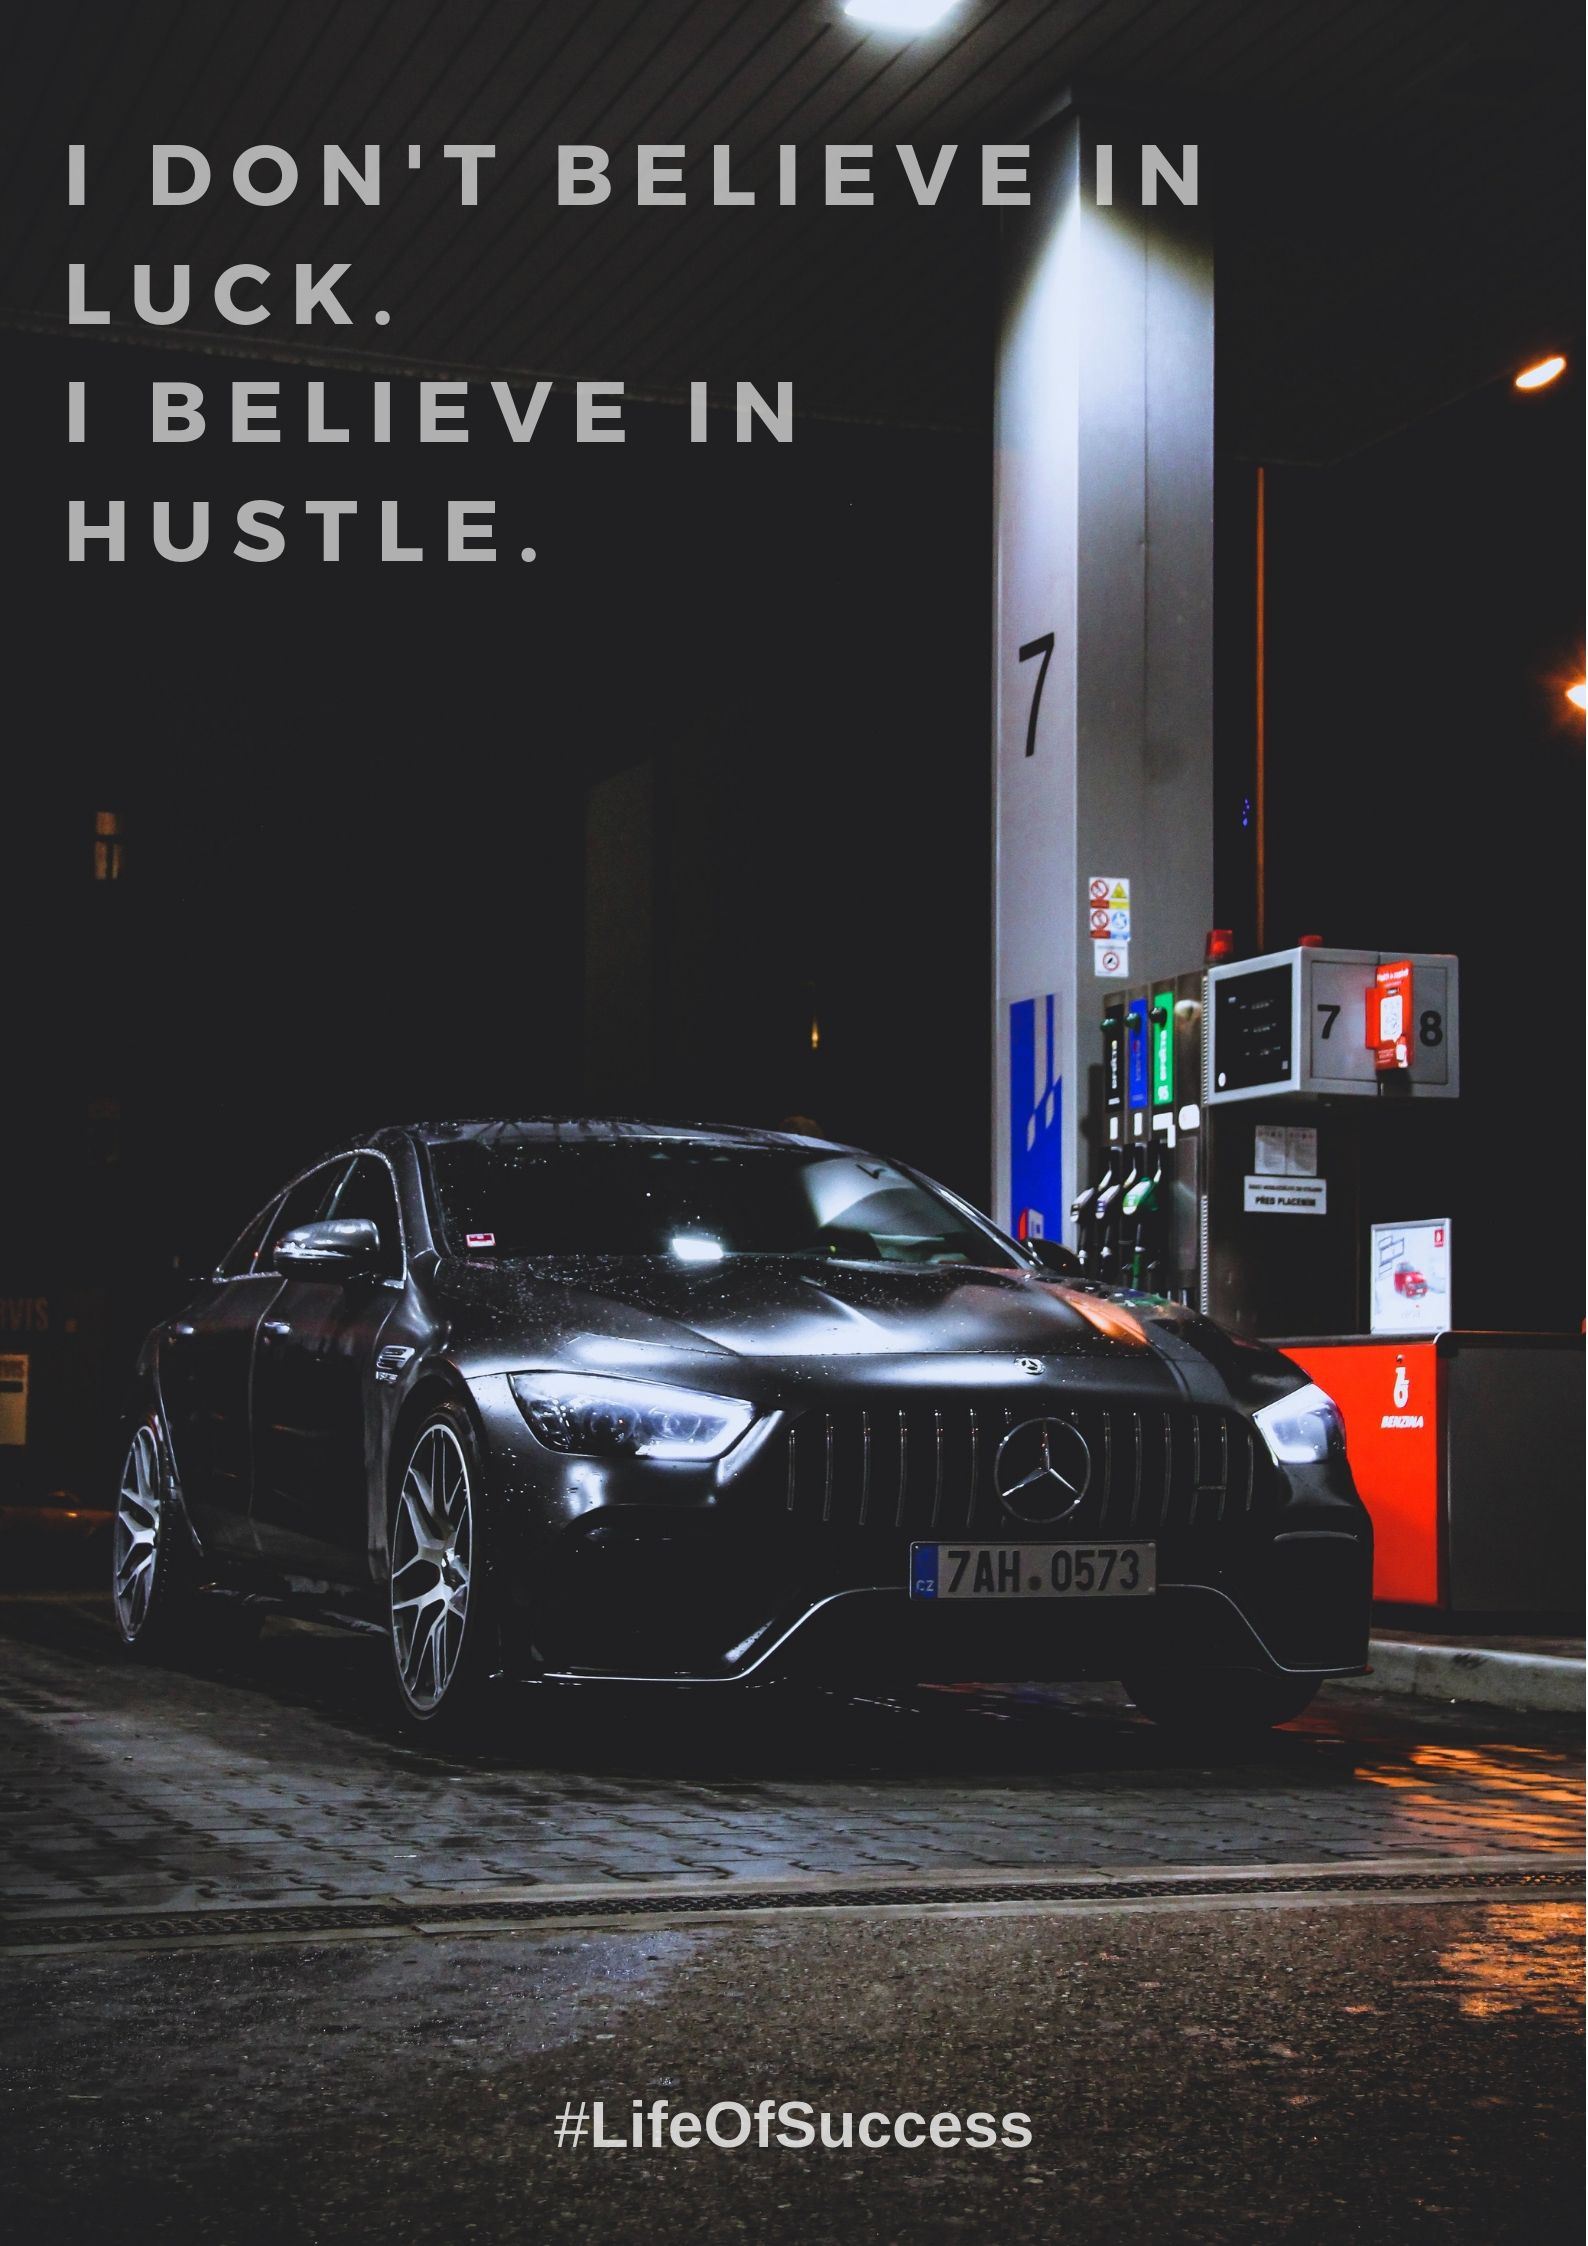 Life Quote Hustle Motivation Black Mercedes Benz Benz Car